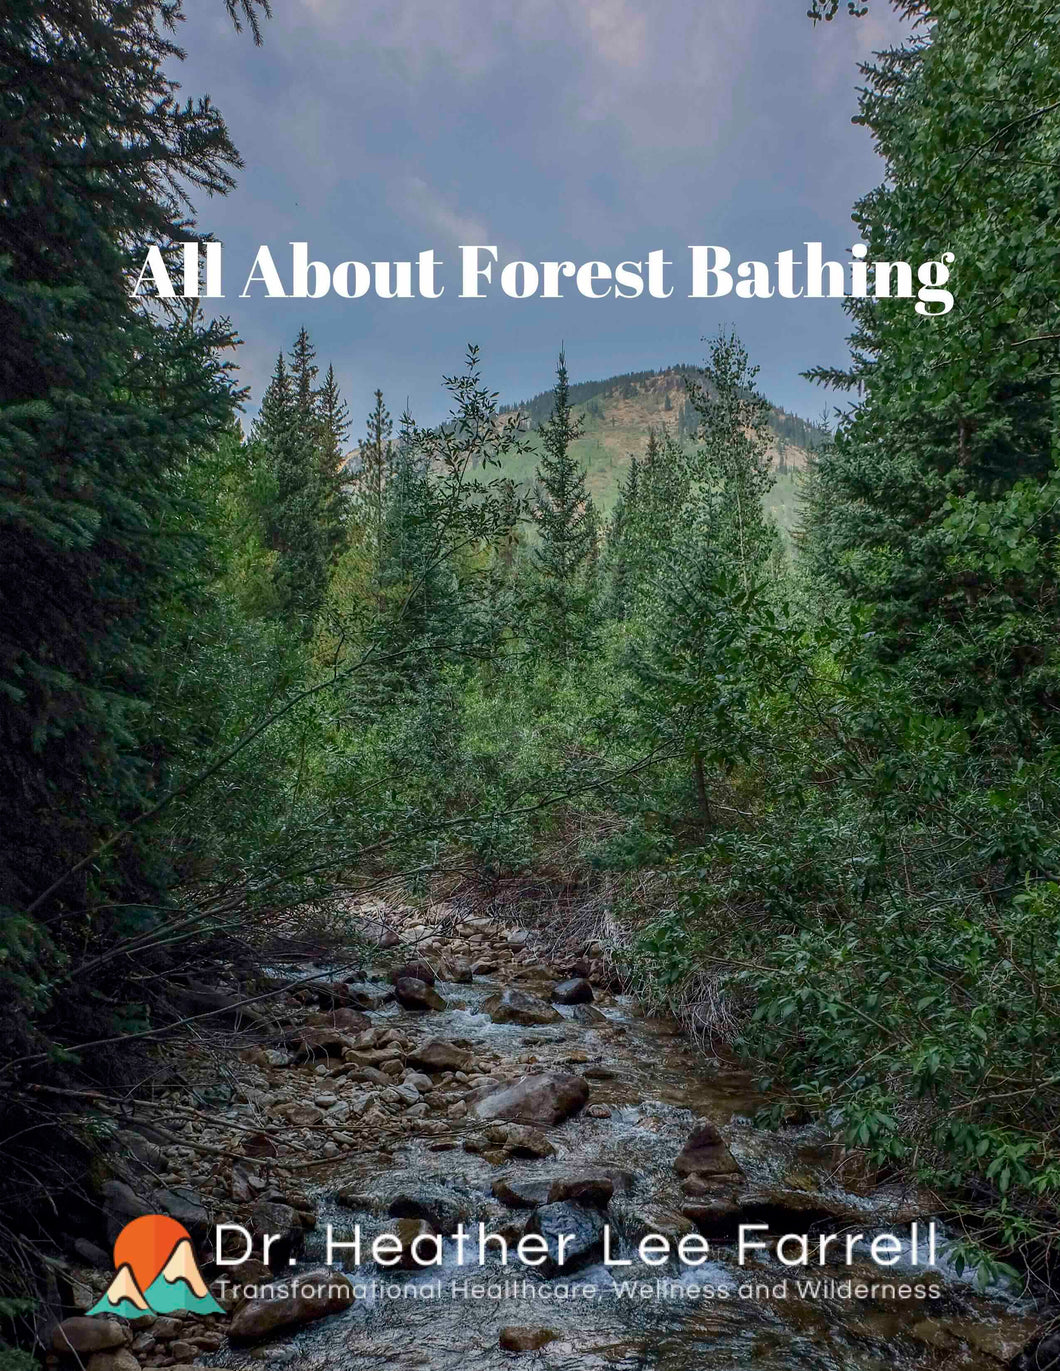 All About Forest Bathing